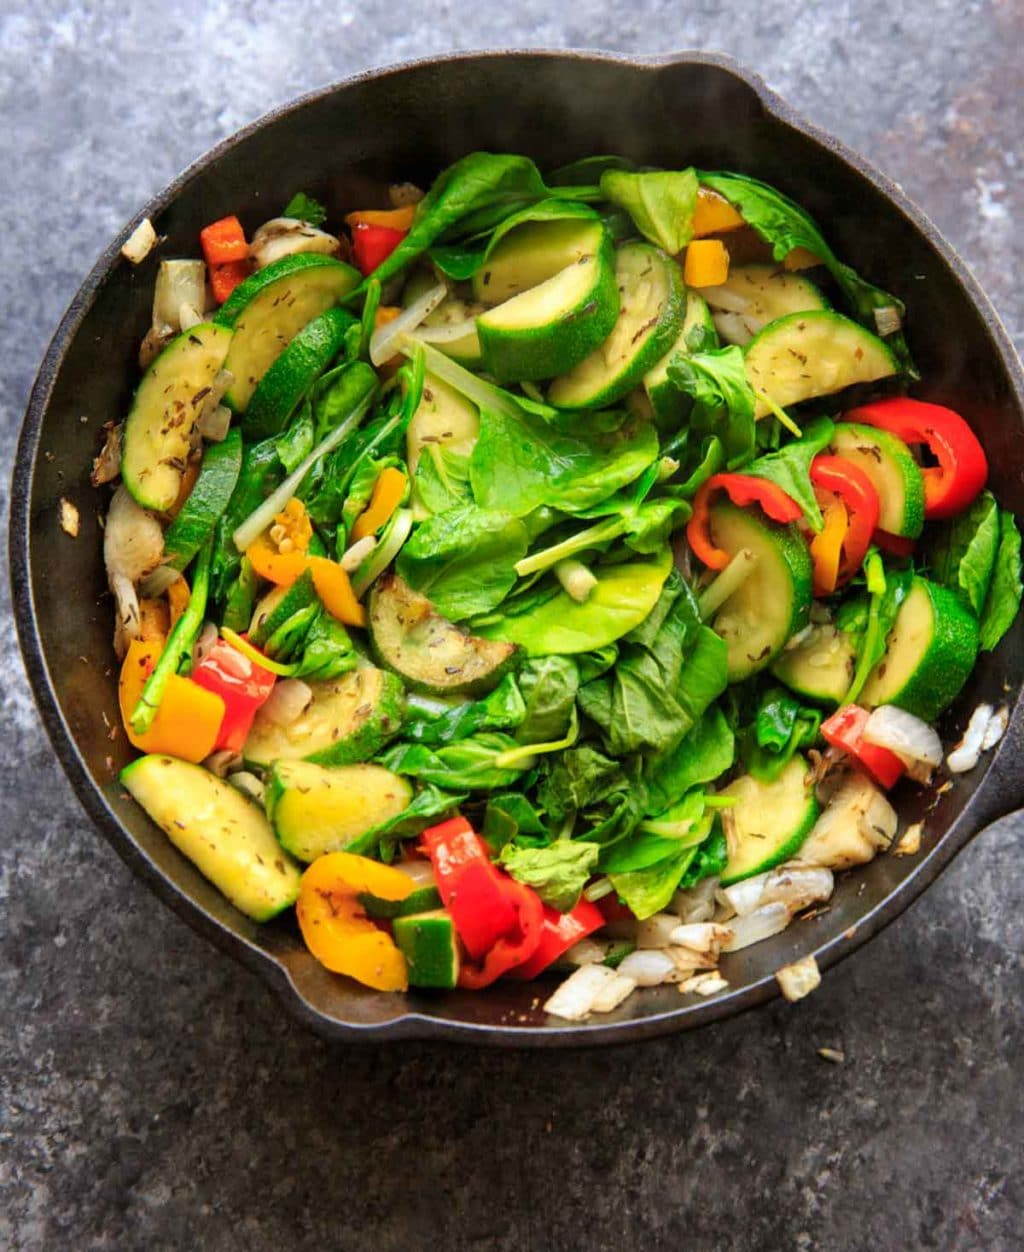 Sauteed vegetables with zucchini, onion, mini sweet peppers and spinach